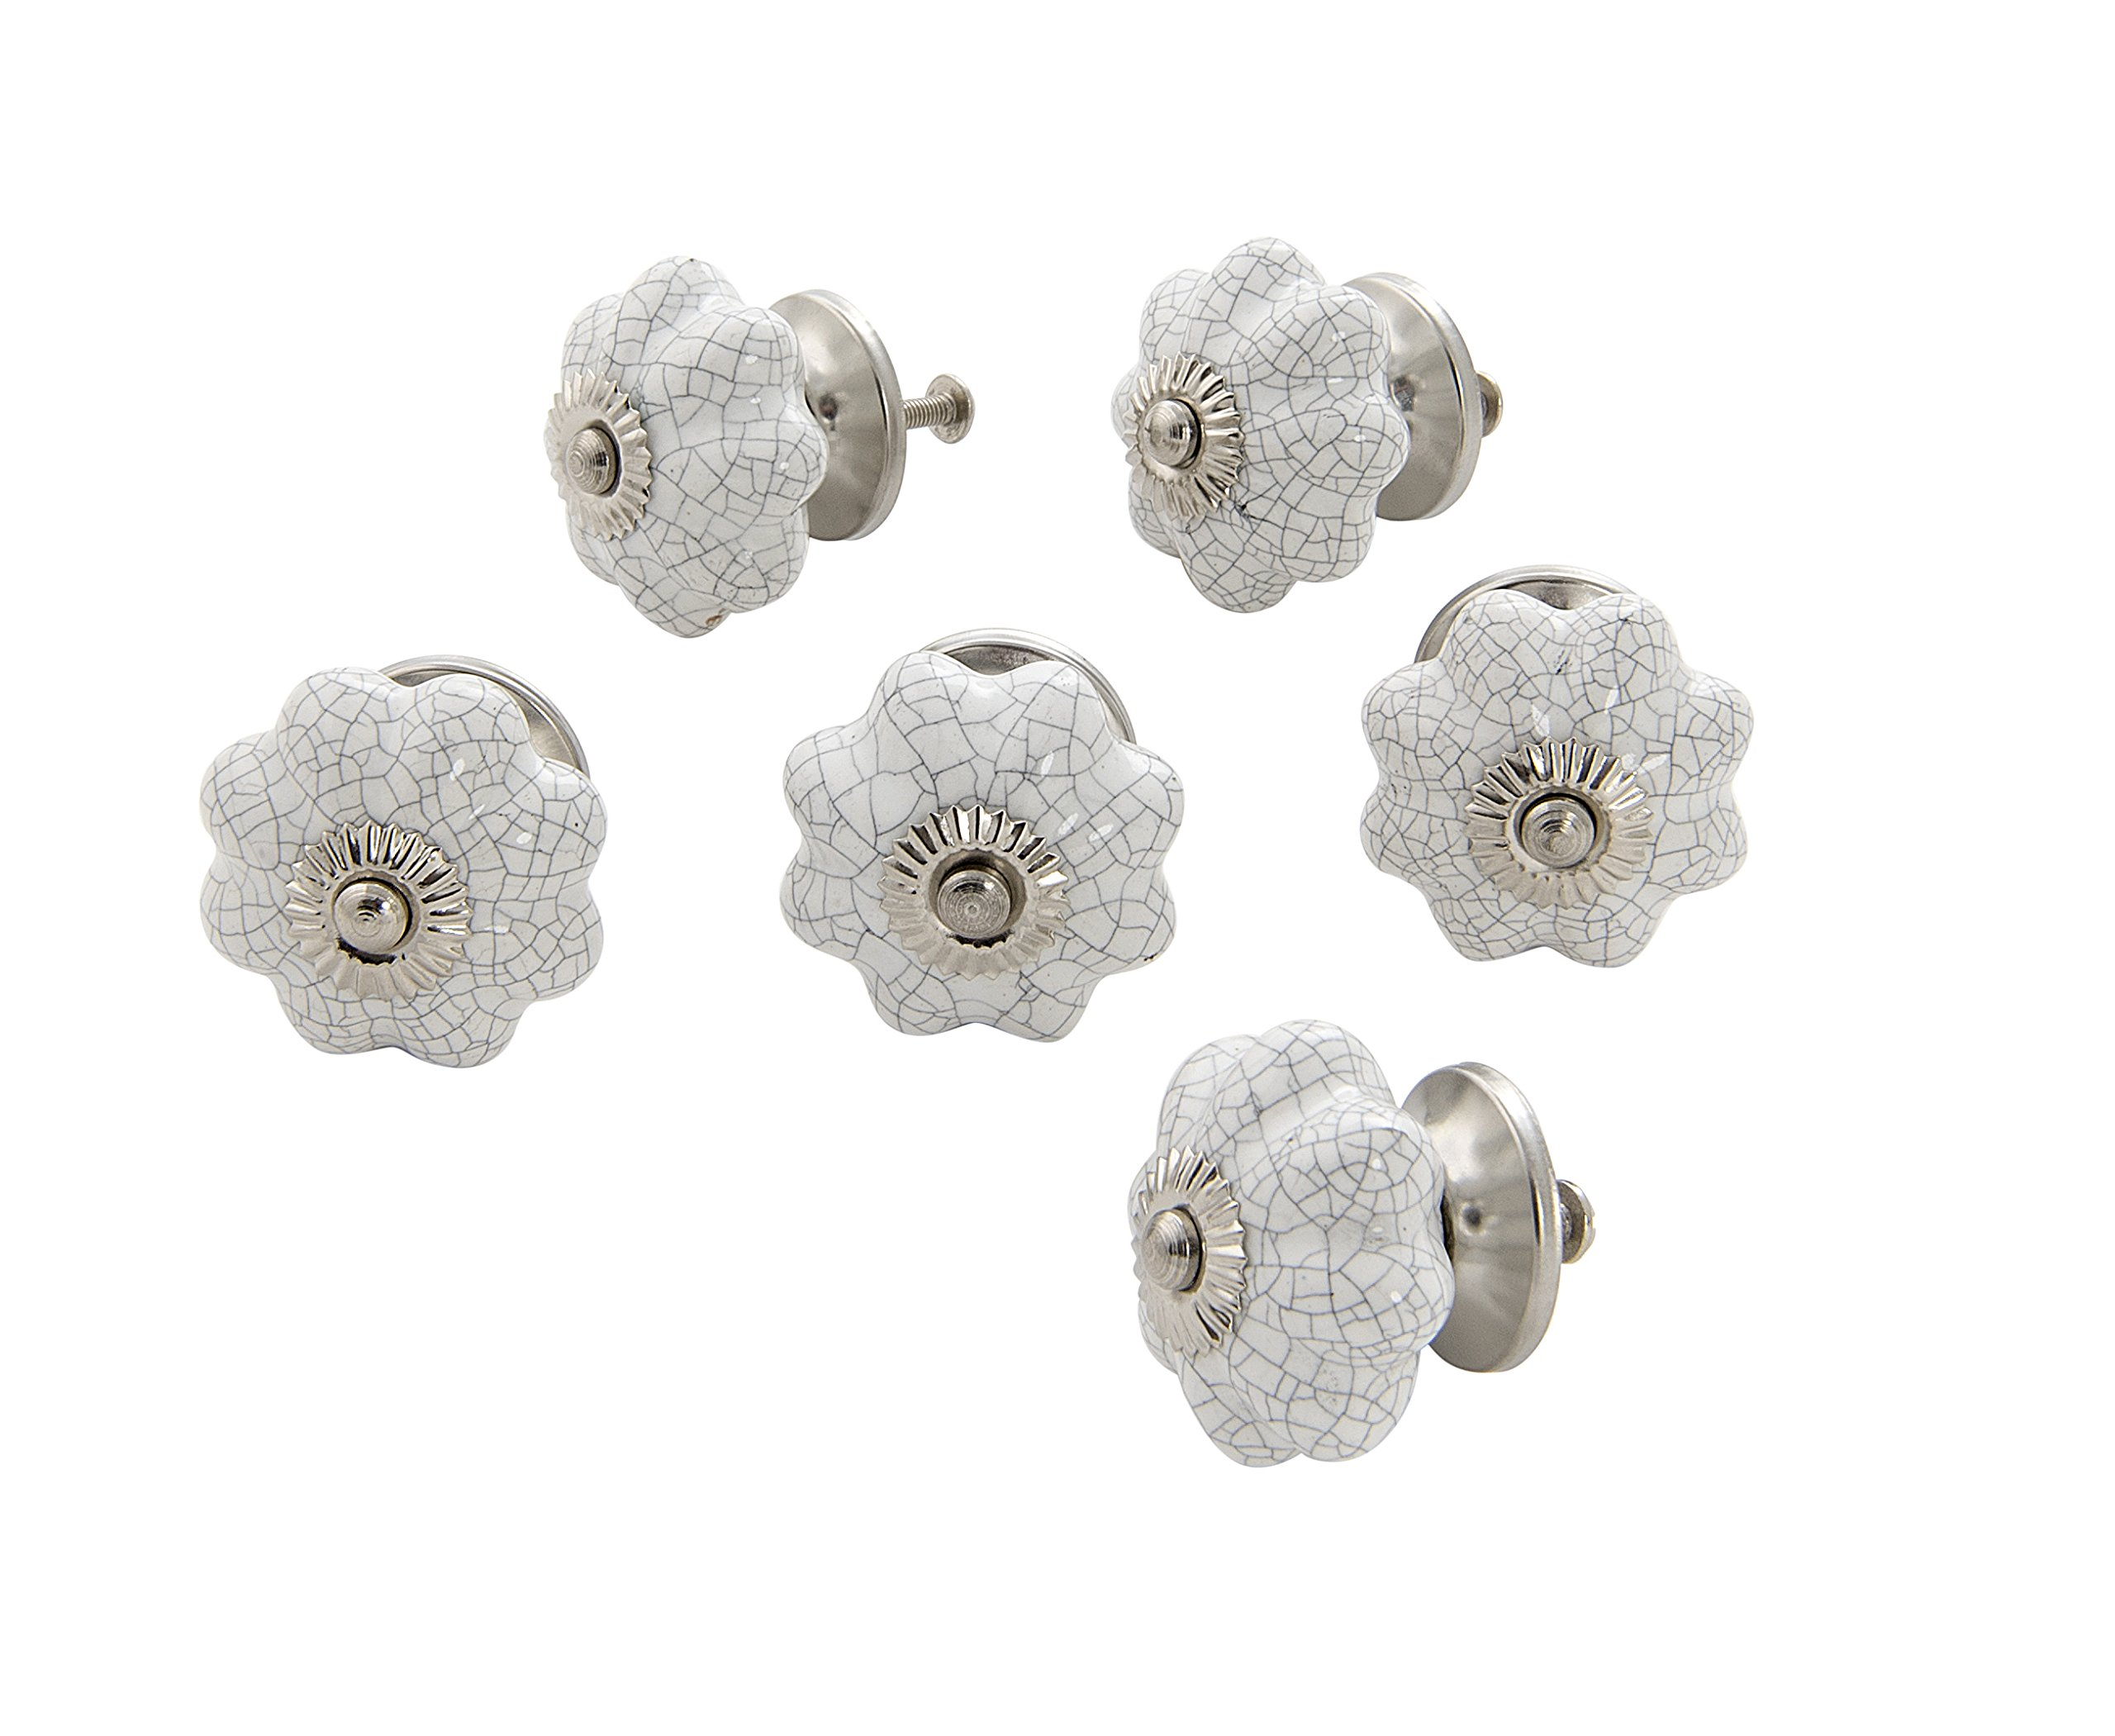 Dritz Home 47028A Ceramic Scallop Flower Knob Handcrafted Knobs for Cabinets & Drawers